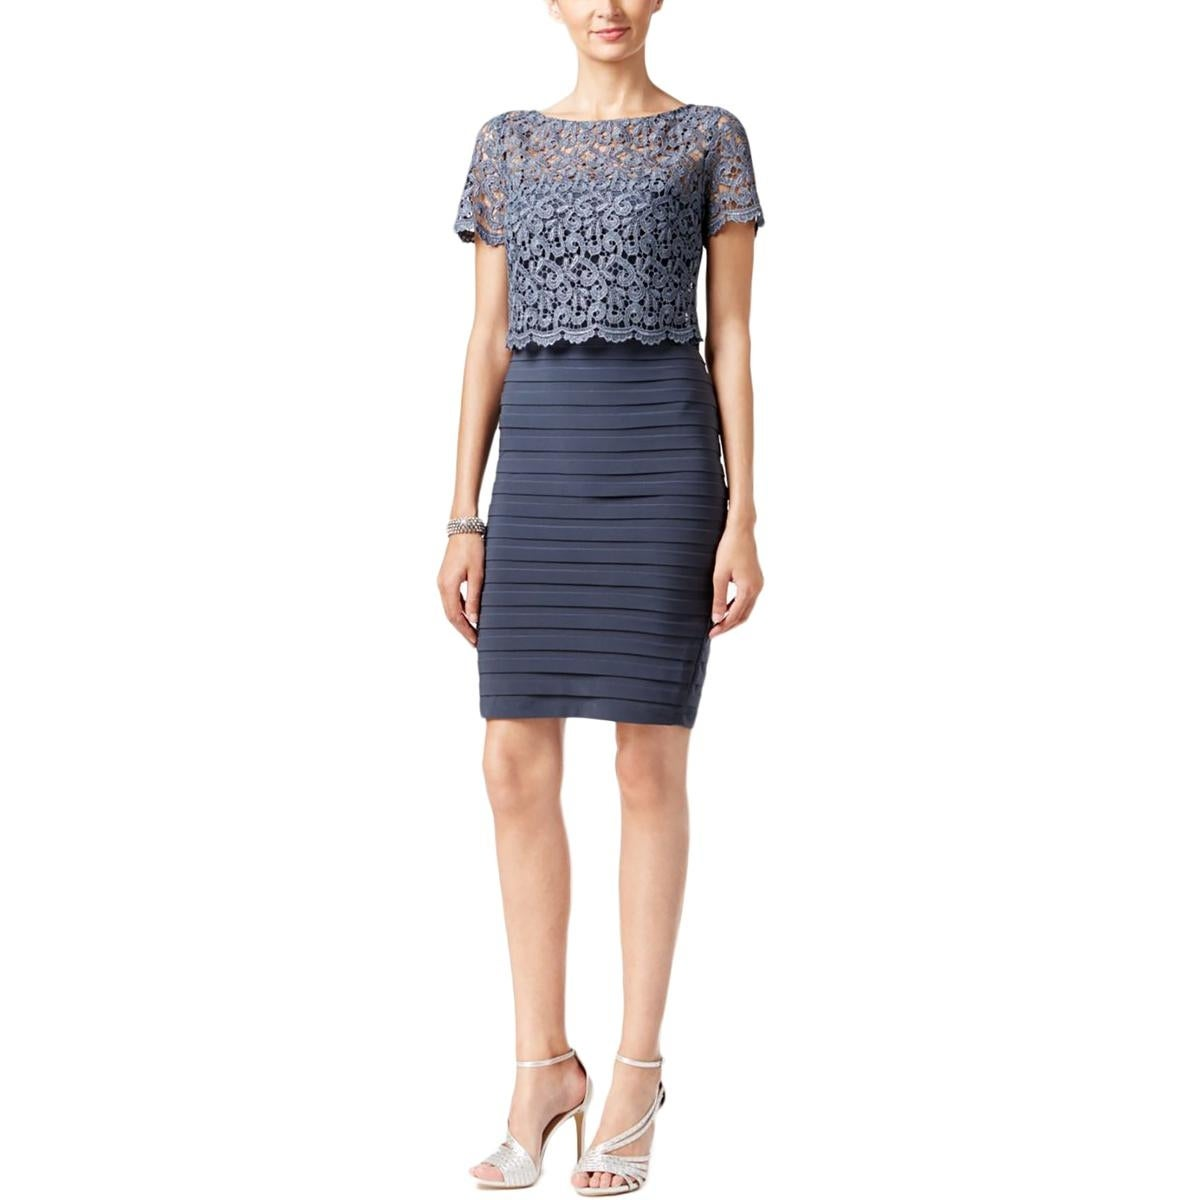 Betsy & Adam Womens Cocktail Dress Lace Popover Metallic - Free ...